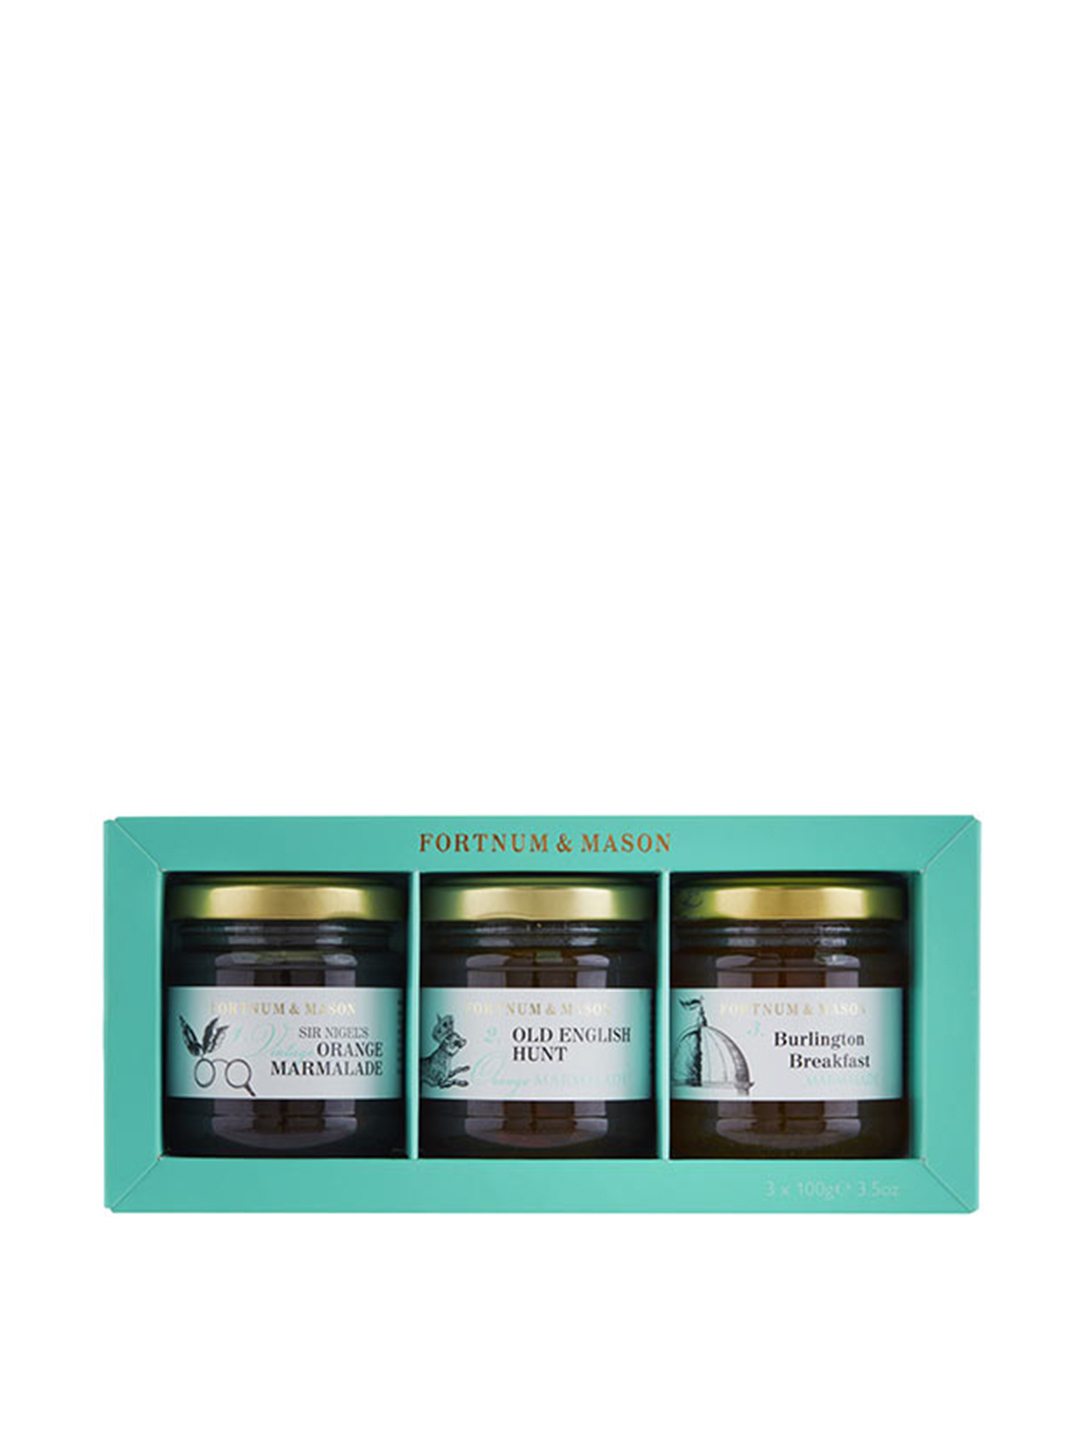 FORTNUM & MASON Marmalade Trio Taster Gift Pack Gifts